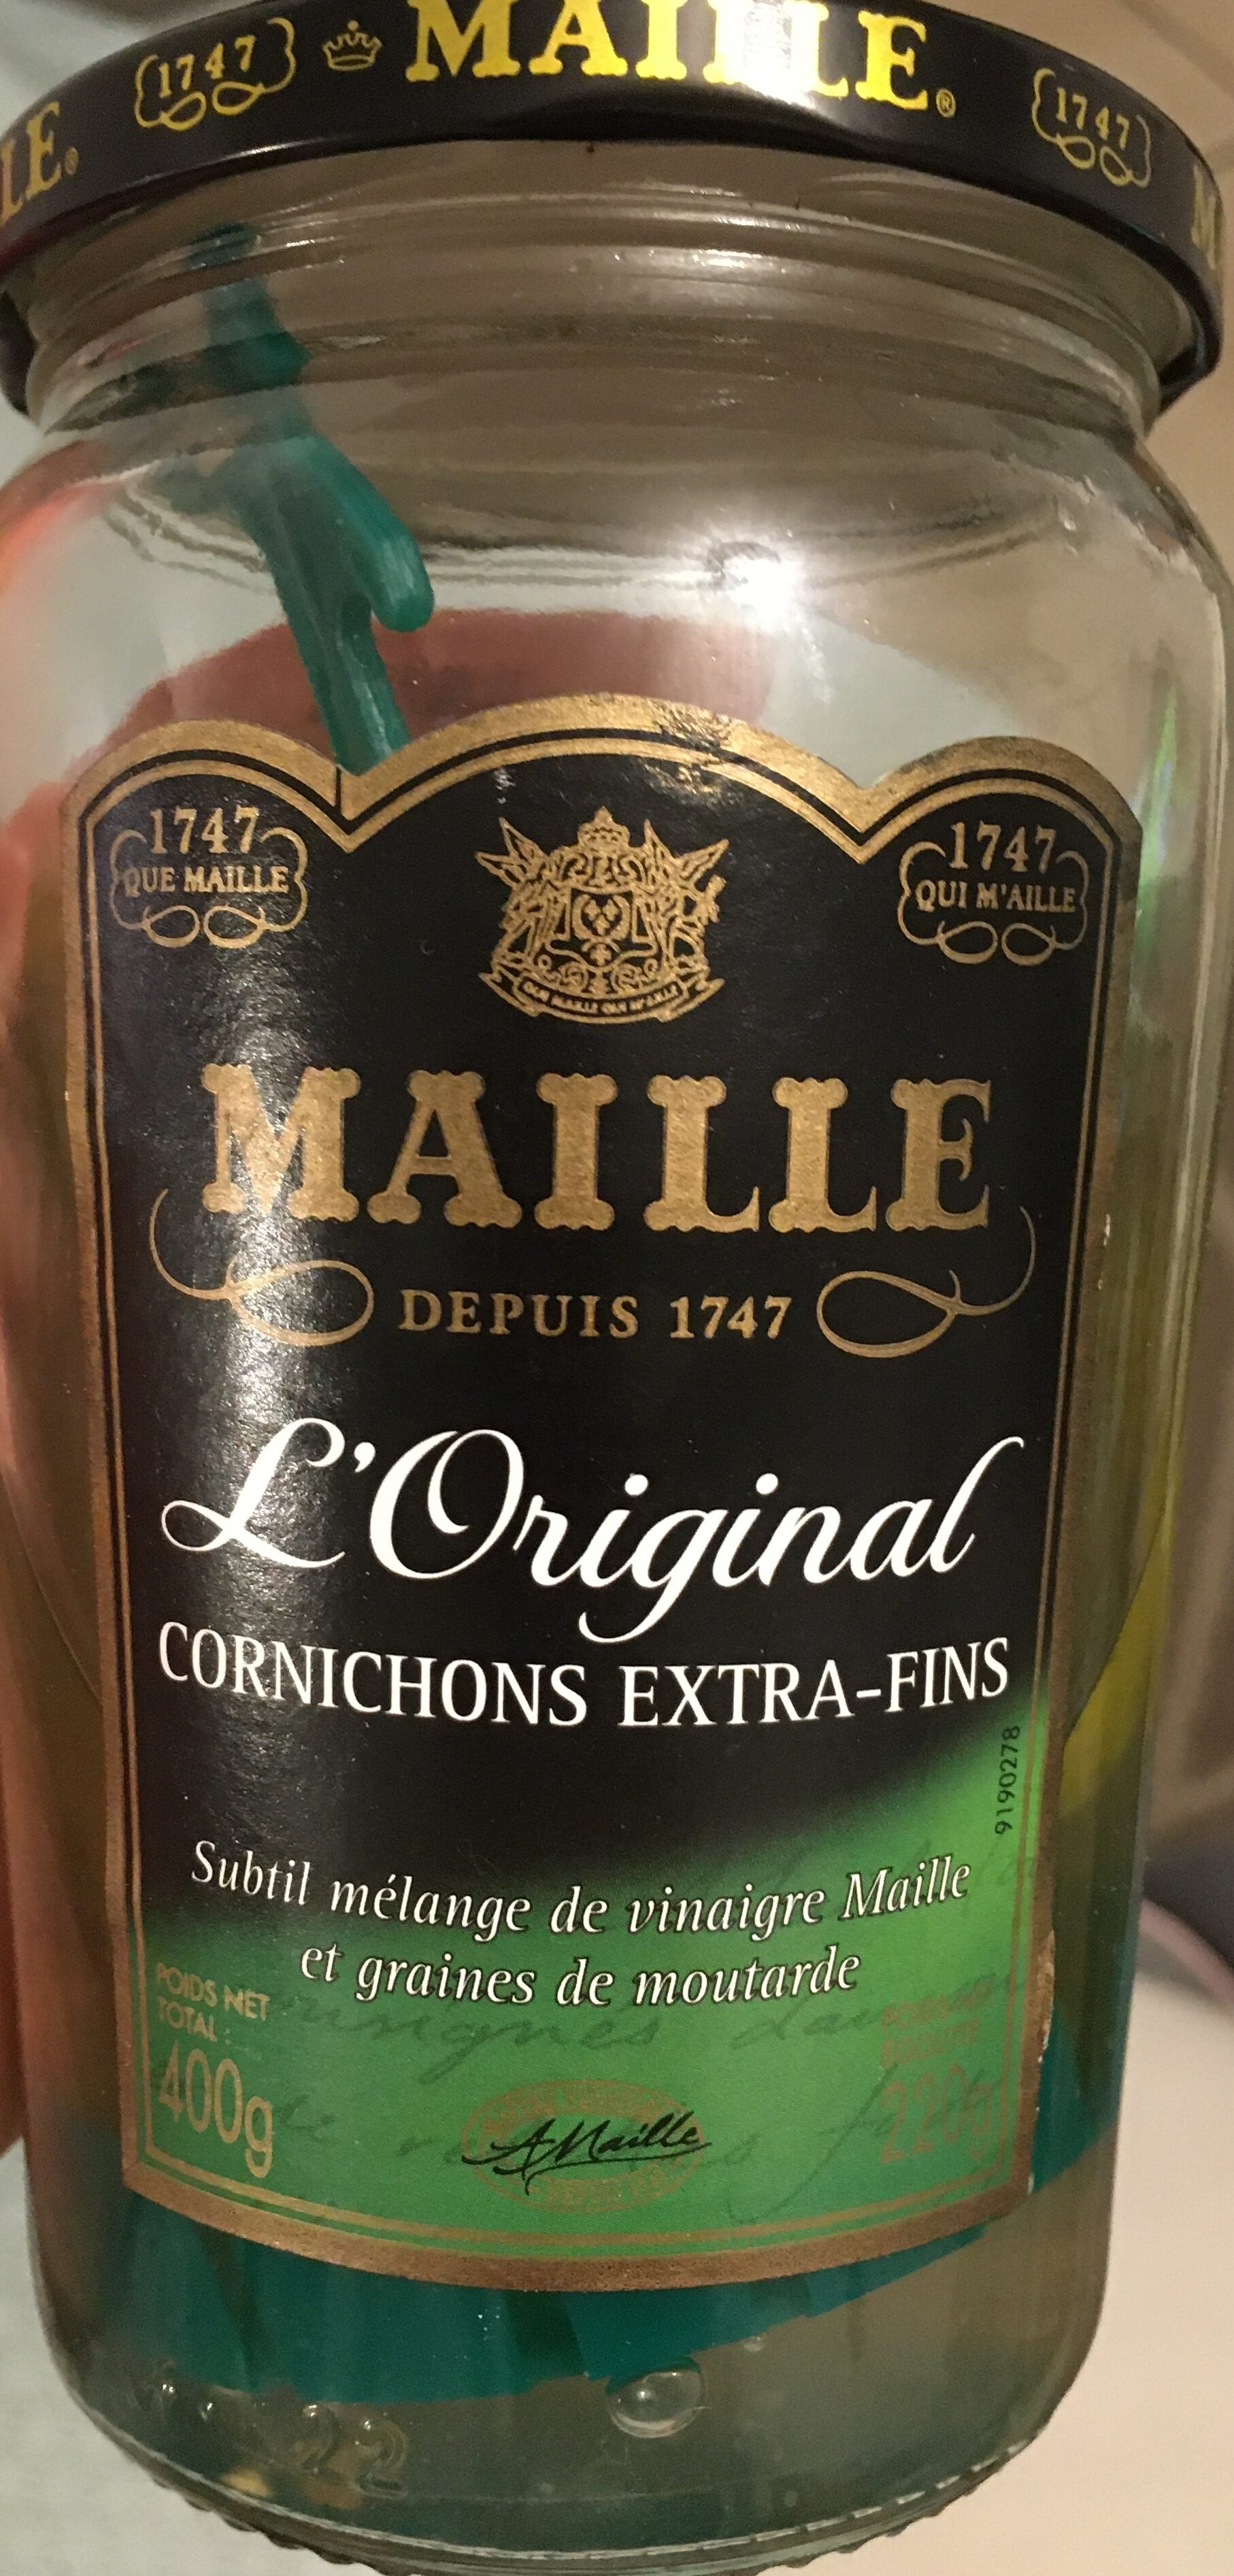 Maille Cornichons Extra-Fins - Product - fr